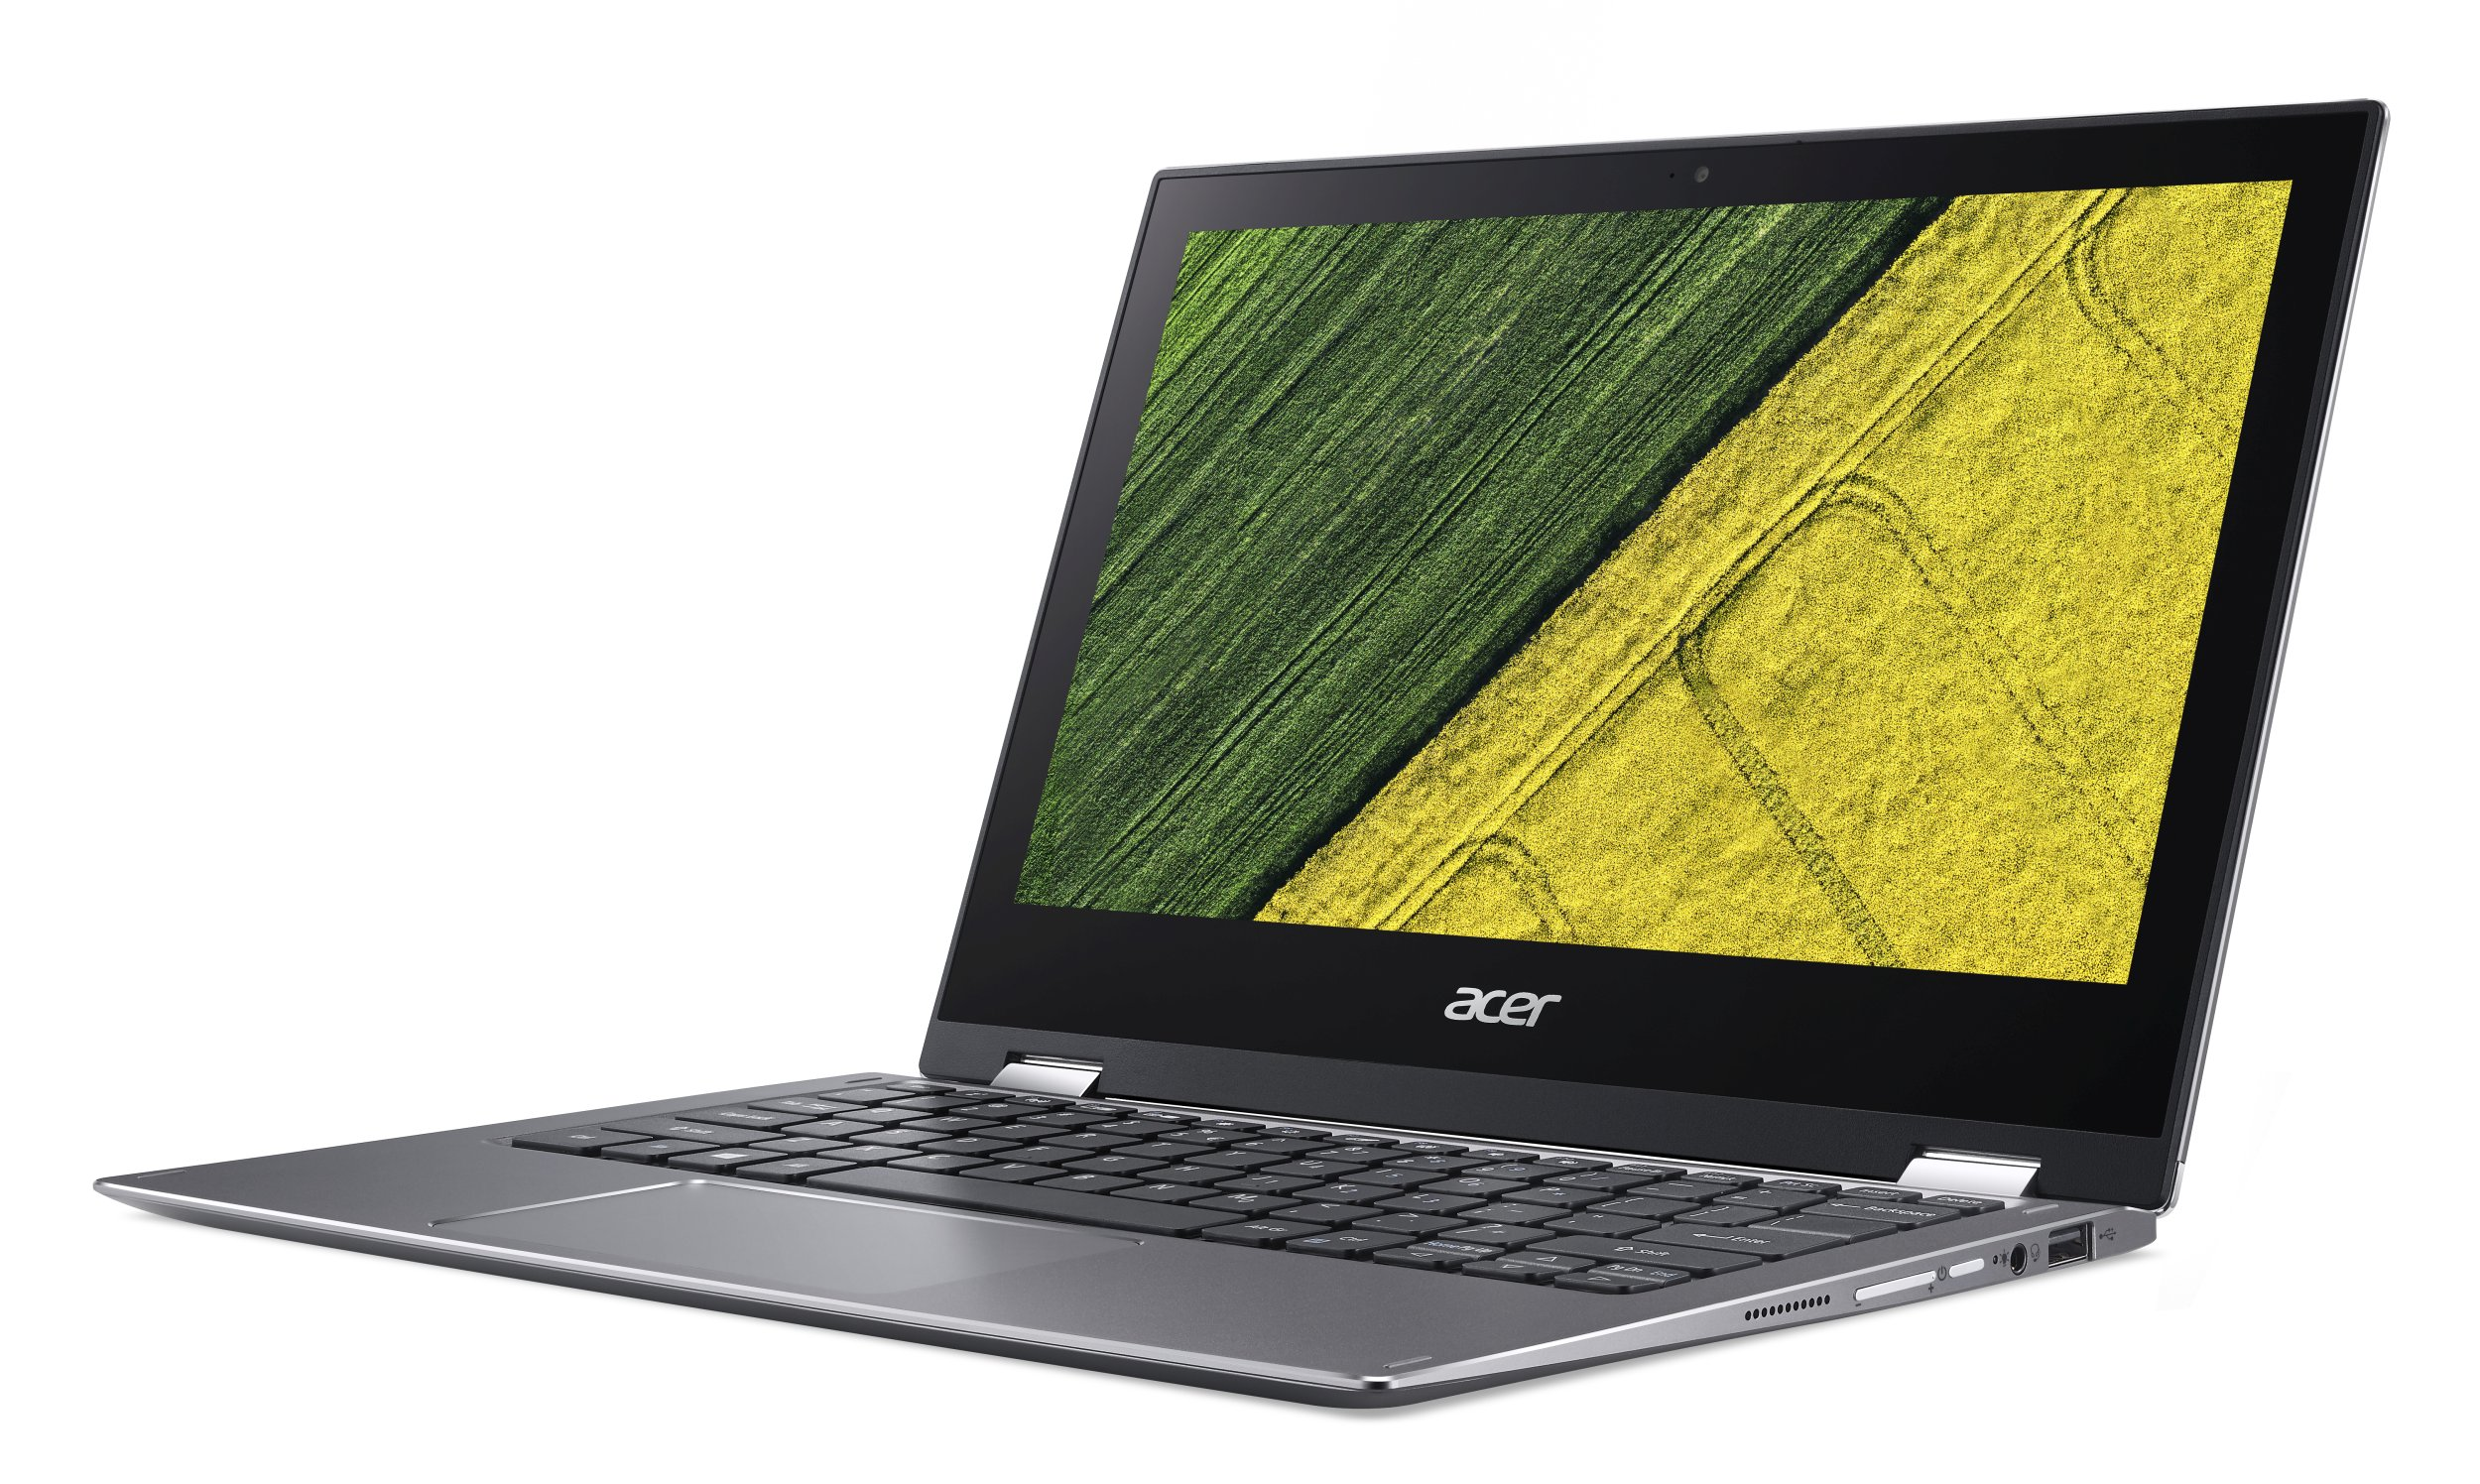 """Acer Spin 1 (SP111-32N-C2RB) Celeron N3350/4GB+N/A/eMMC 32GB+N/A/HD Graphics/11.6"""" Multi-touch FHD IPS/BT/W10 Home/Gray"""